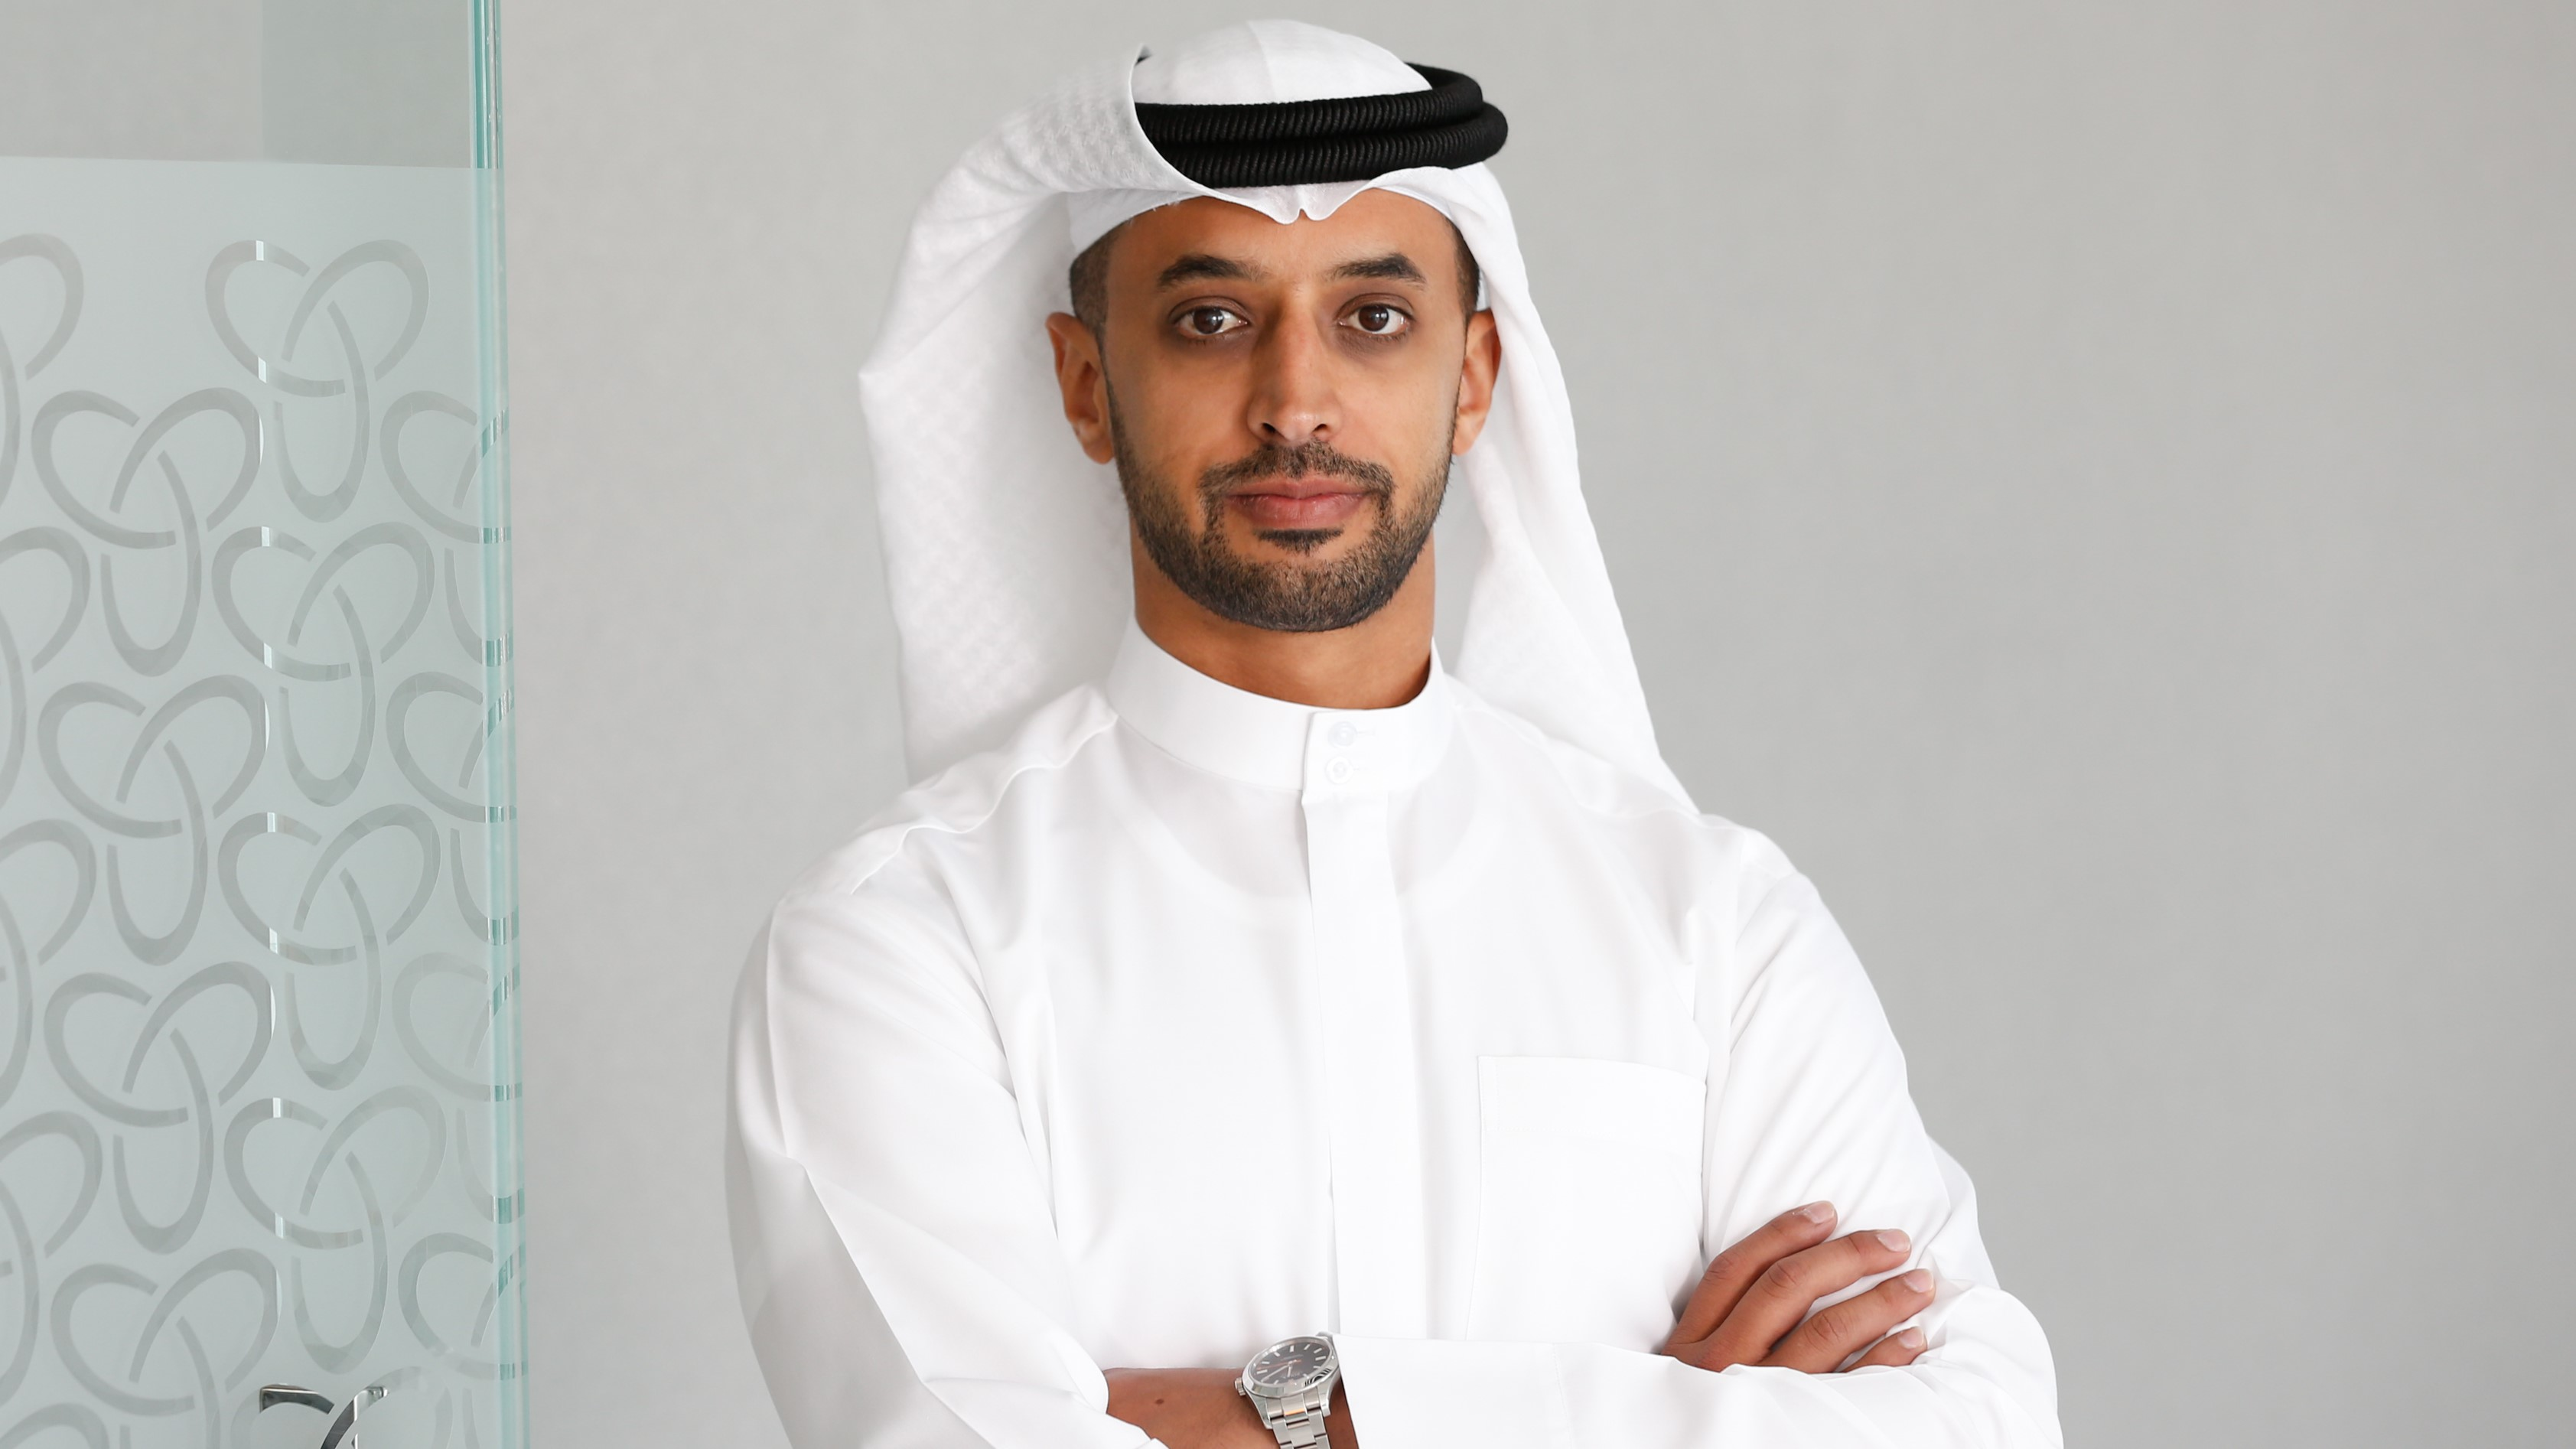 DMCC records 5.4% growth in new company registrations in 2019